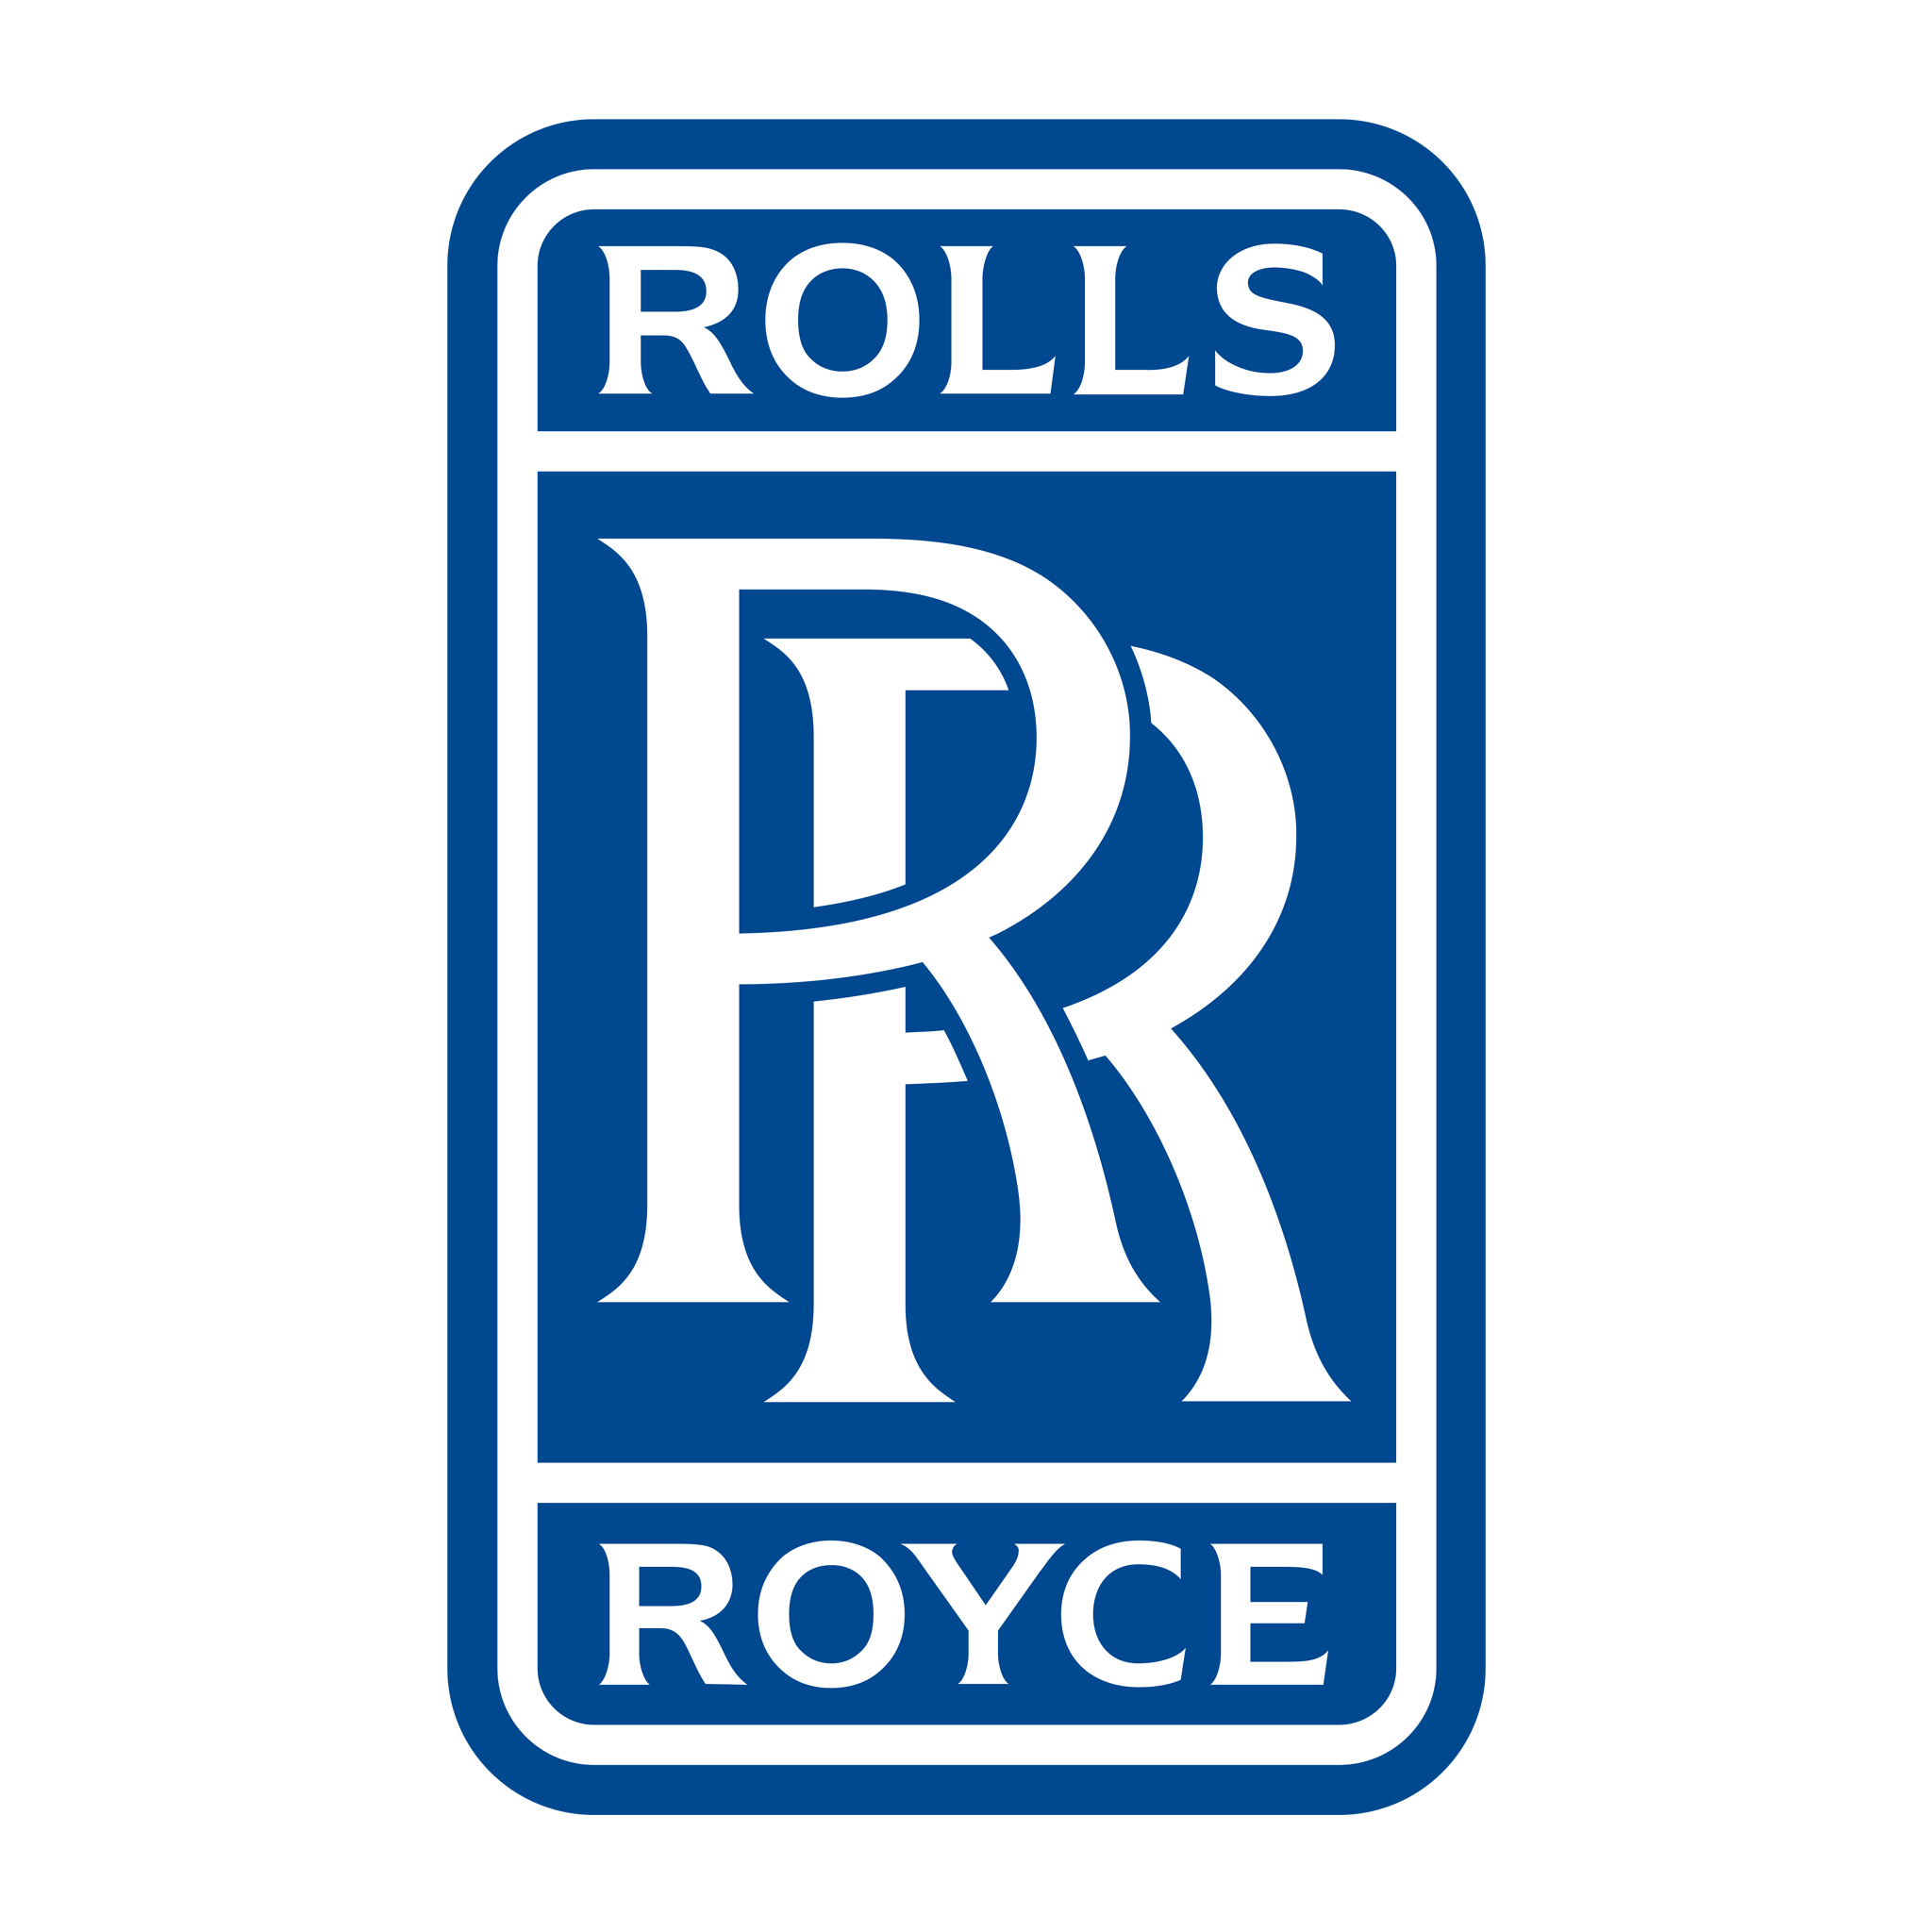 rolls royce logo hd png meaning information. Black Bedroom Furniture Sets. Home Design Ideas